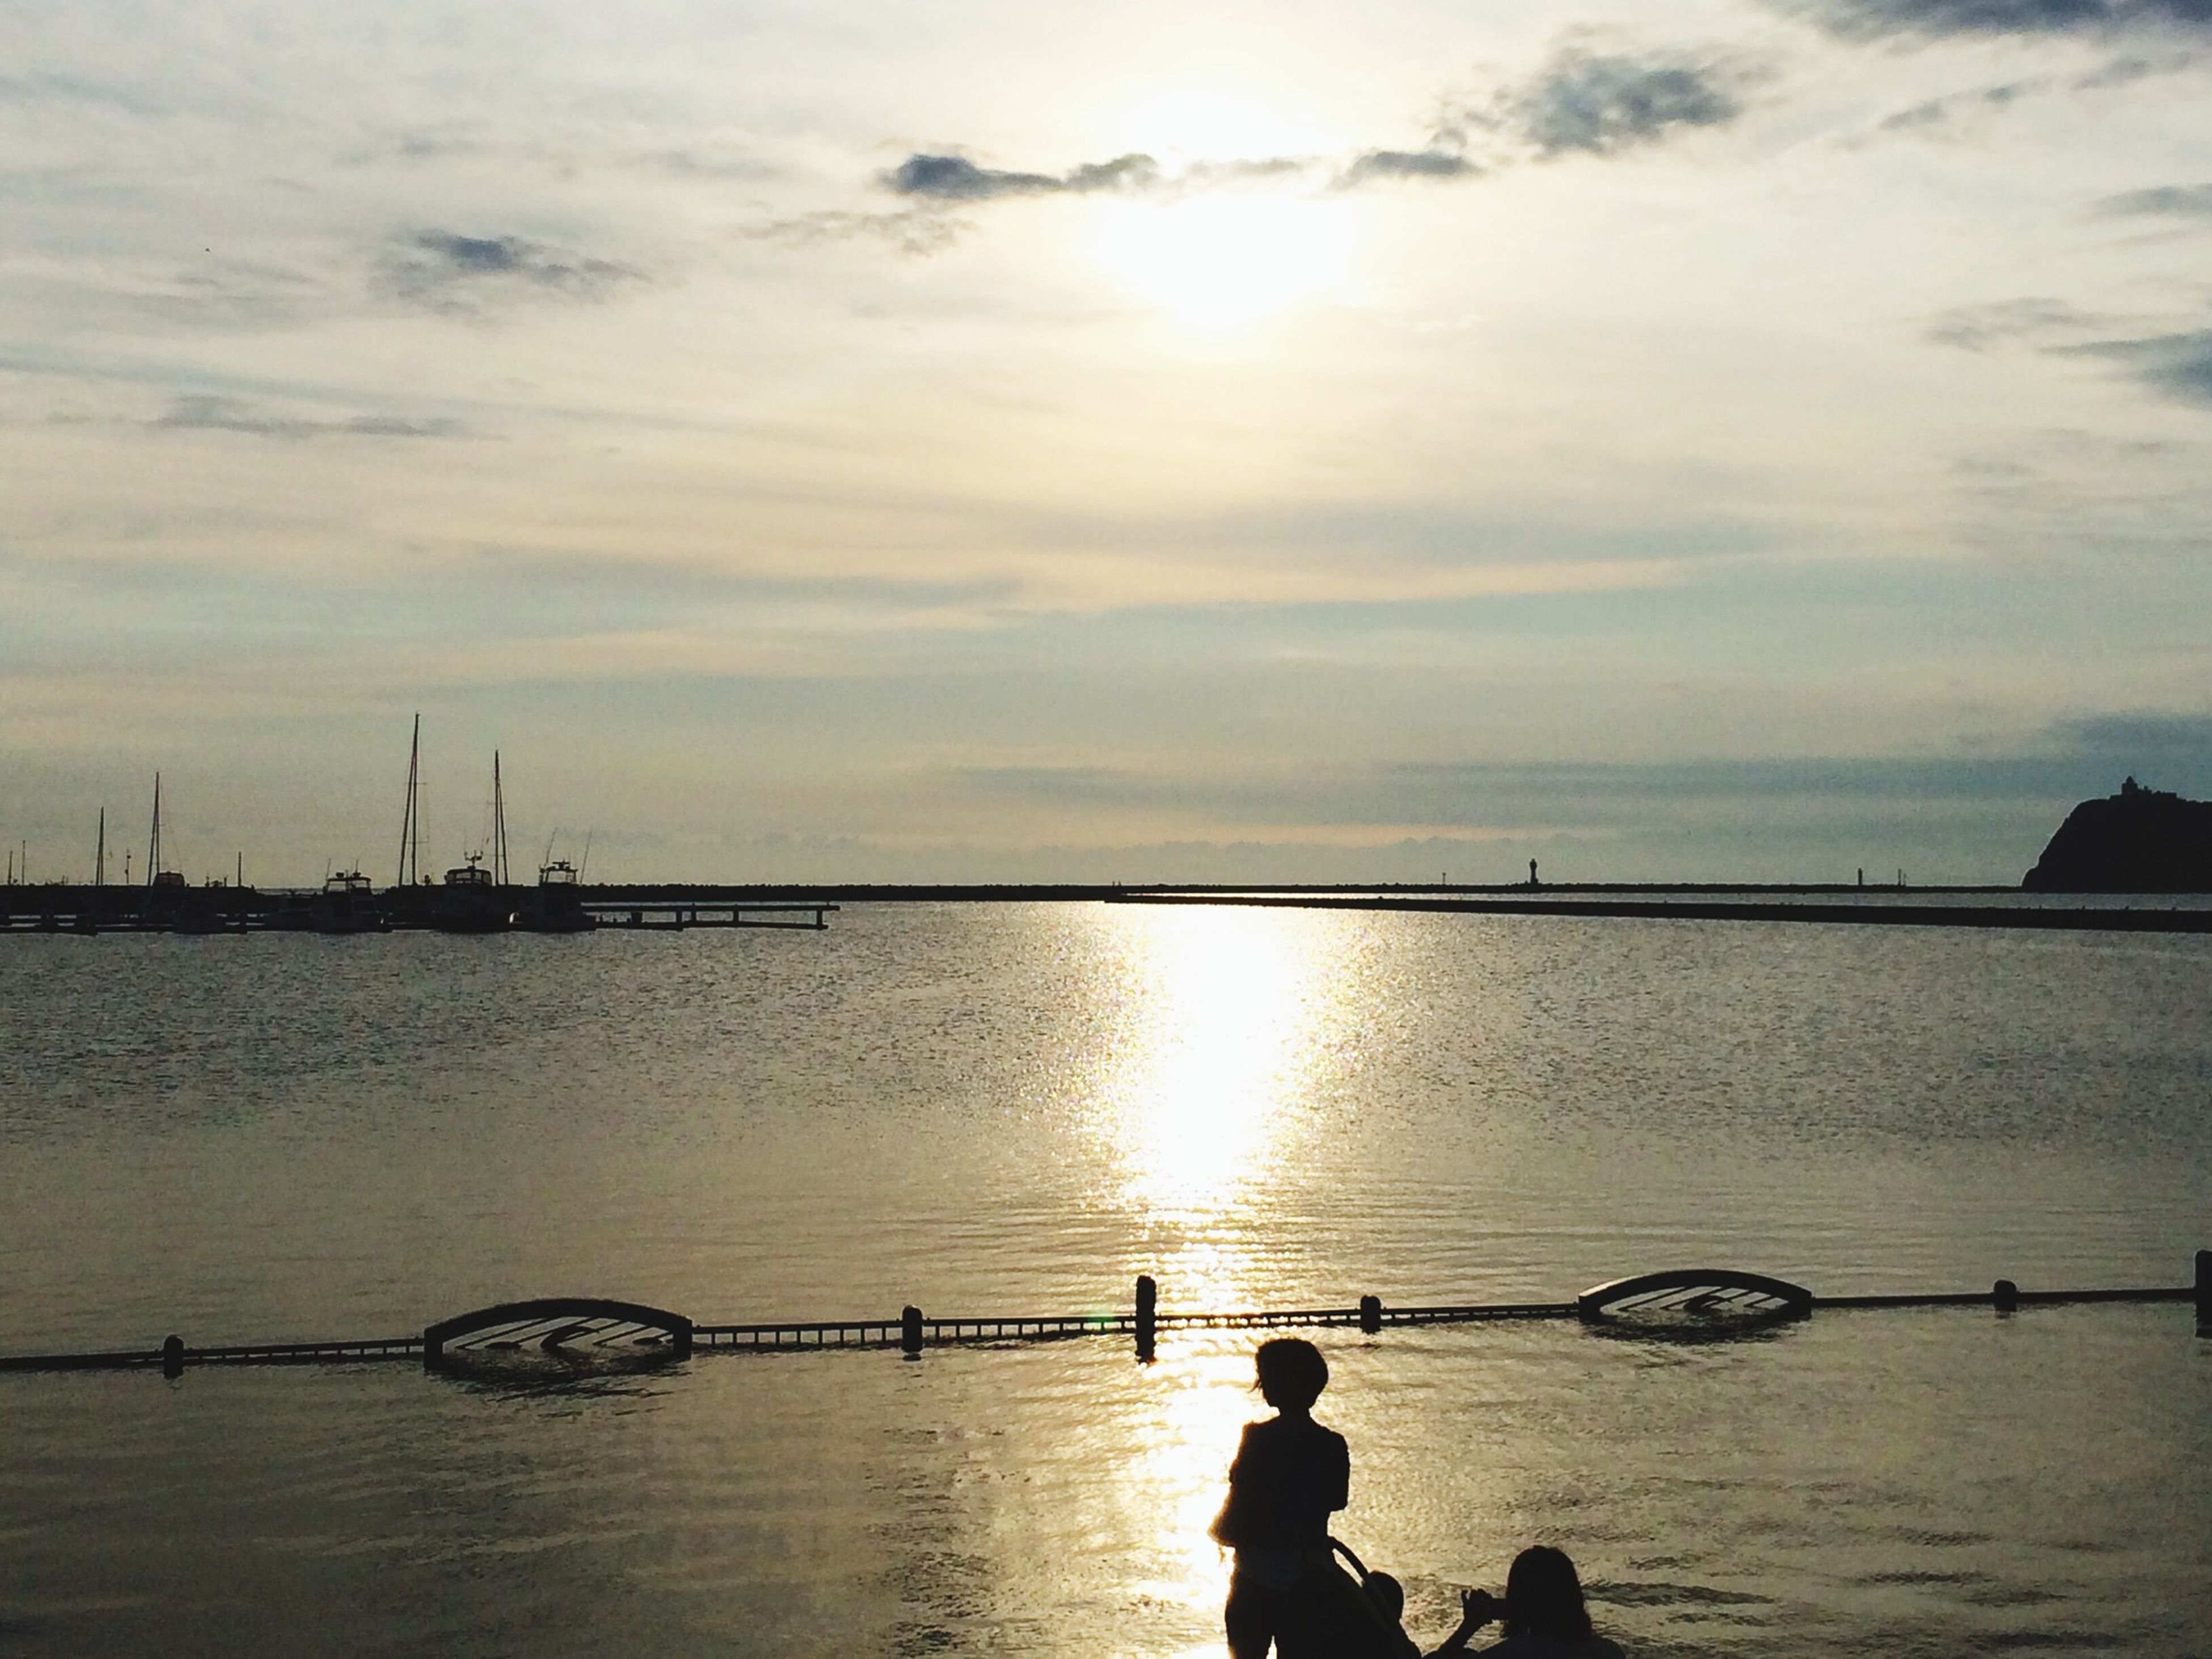 water, silhouette, sunset, sky, sea, sun, transportation, nautical vessel, tranquility, mode of transport, scenics, tranquil scene, reflection, nature, sunlight, beauty in nature, lake, men, bicycle